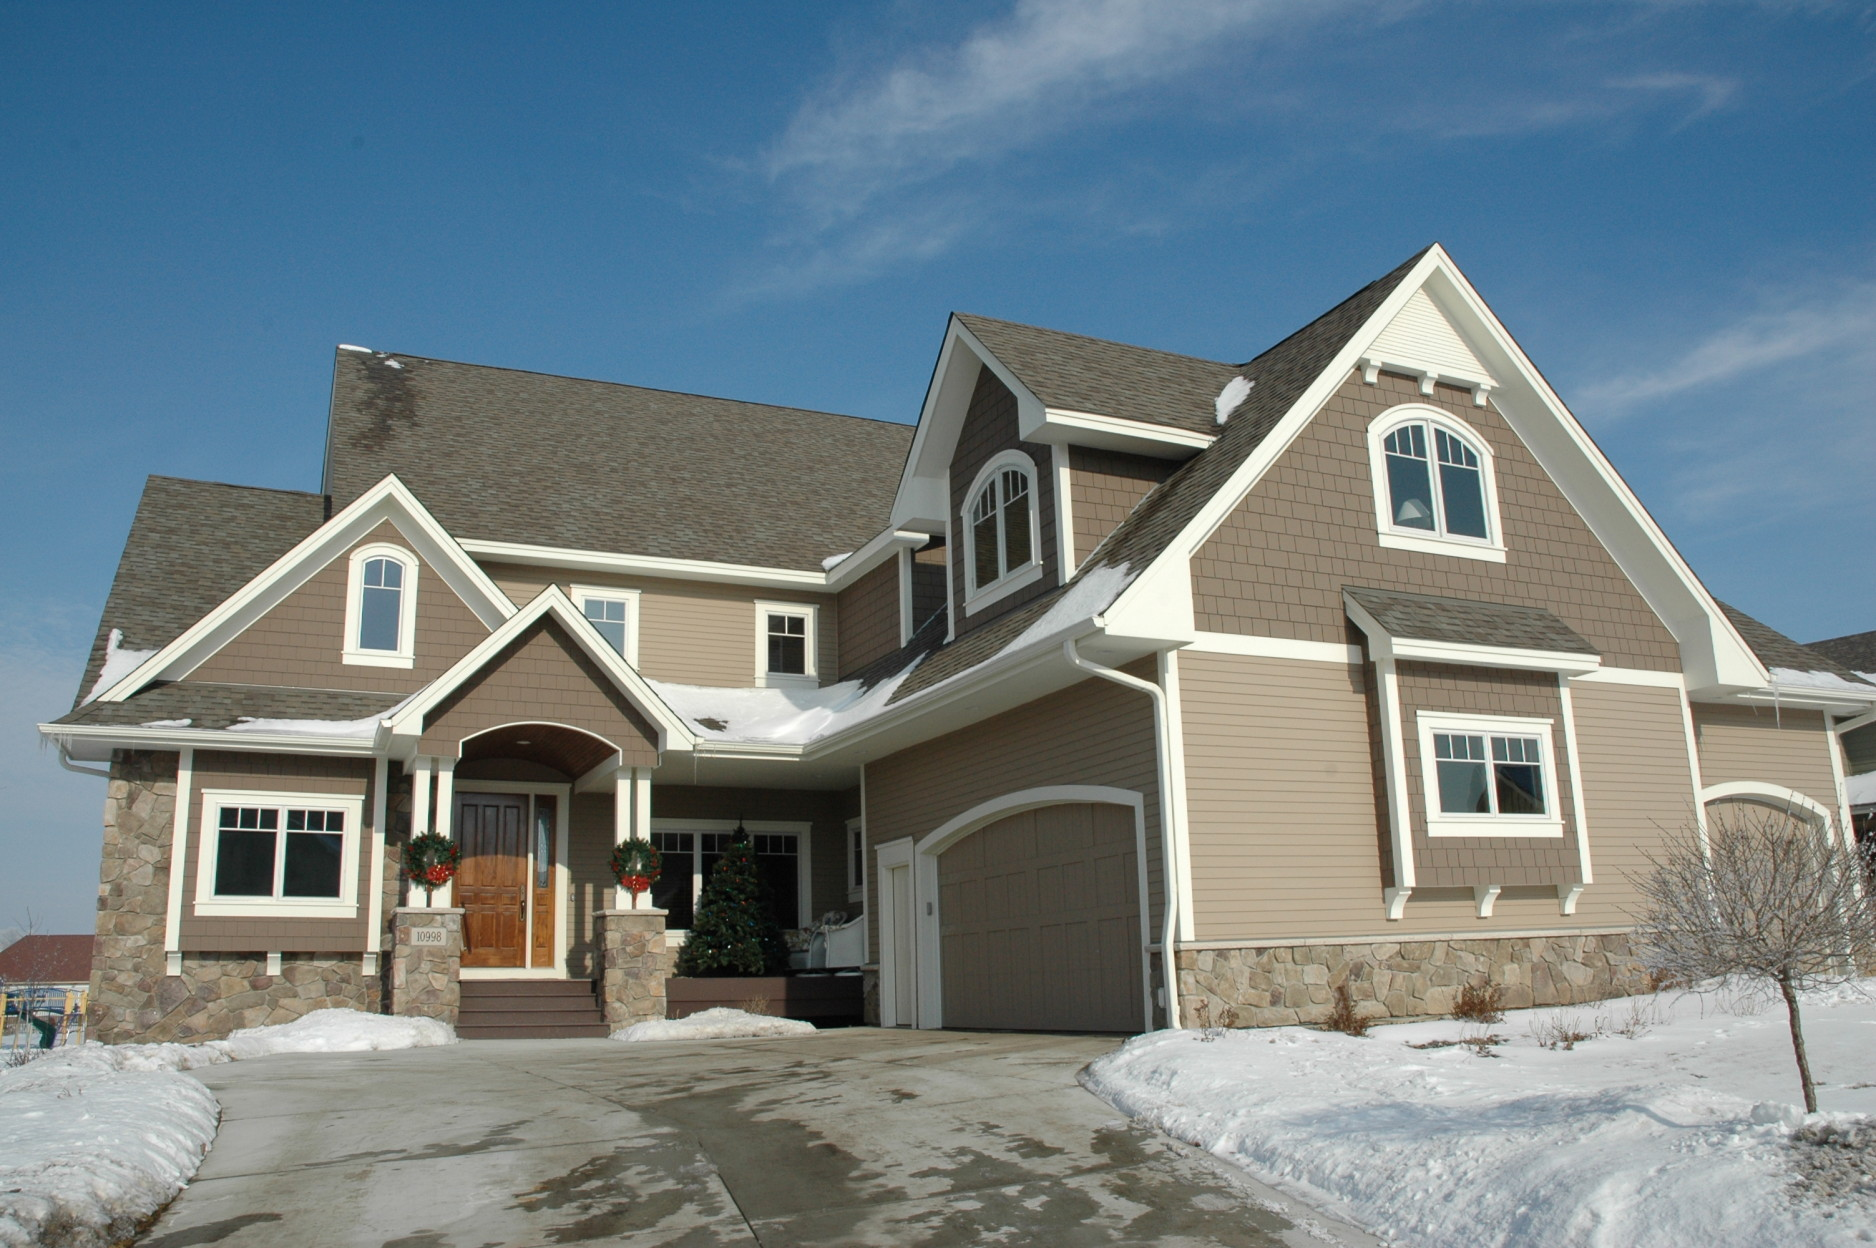 Behr Design New Construction Homes In Minnesota Behr Design